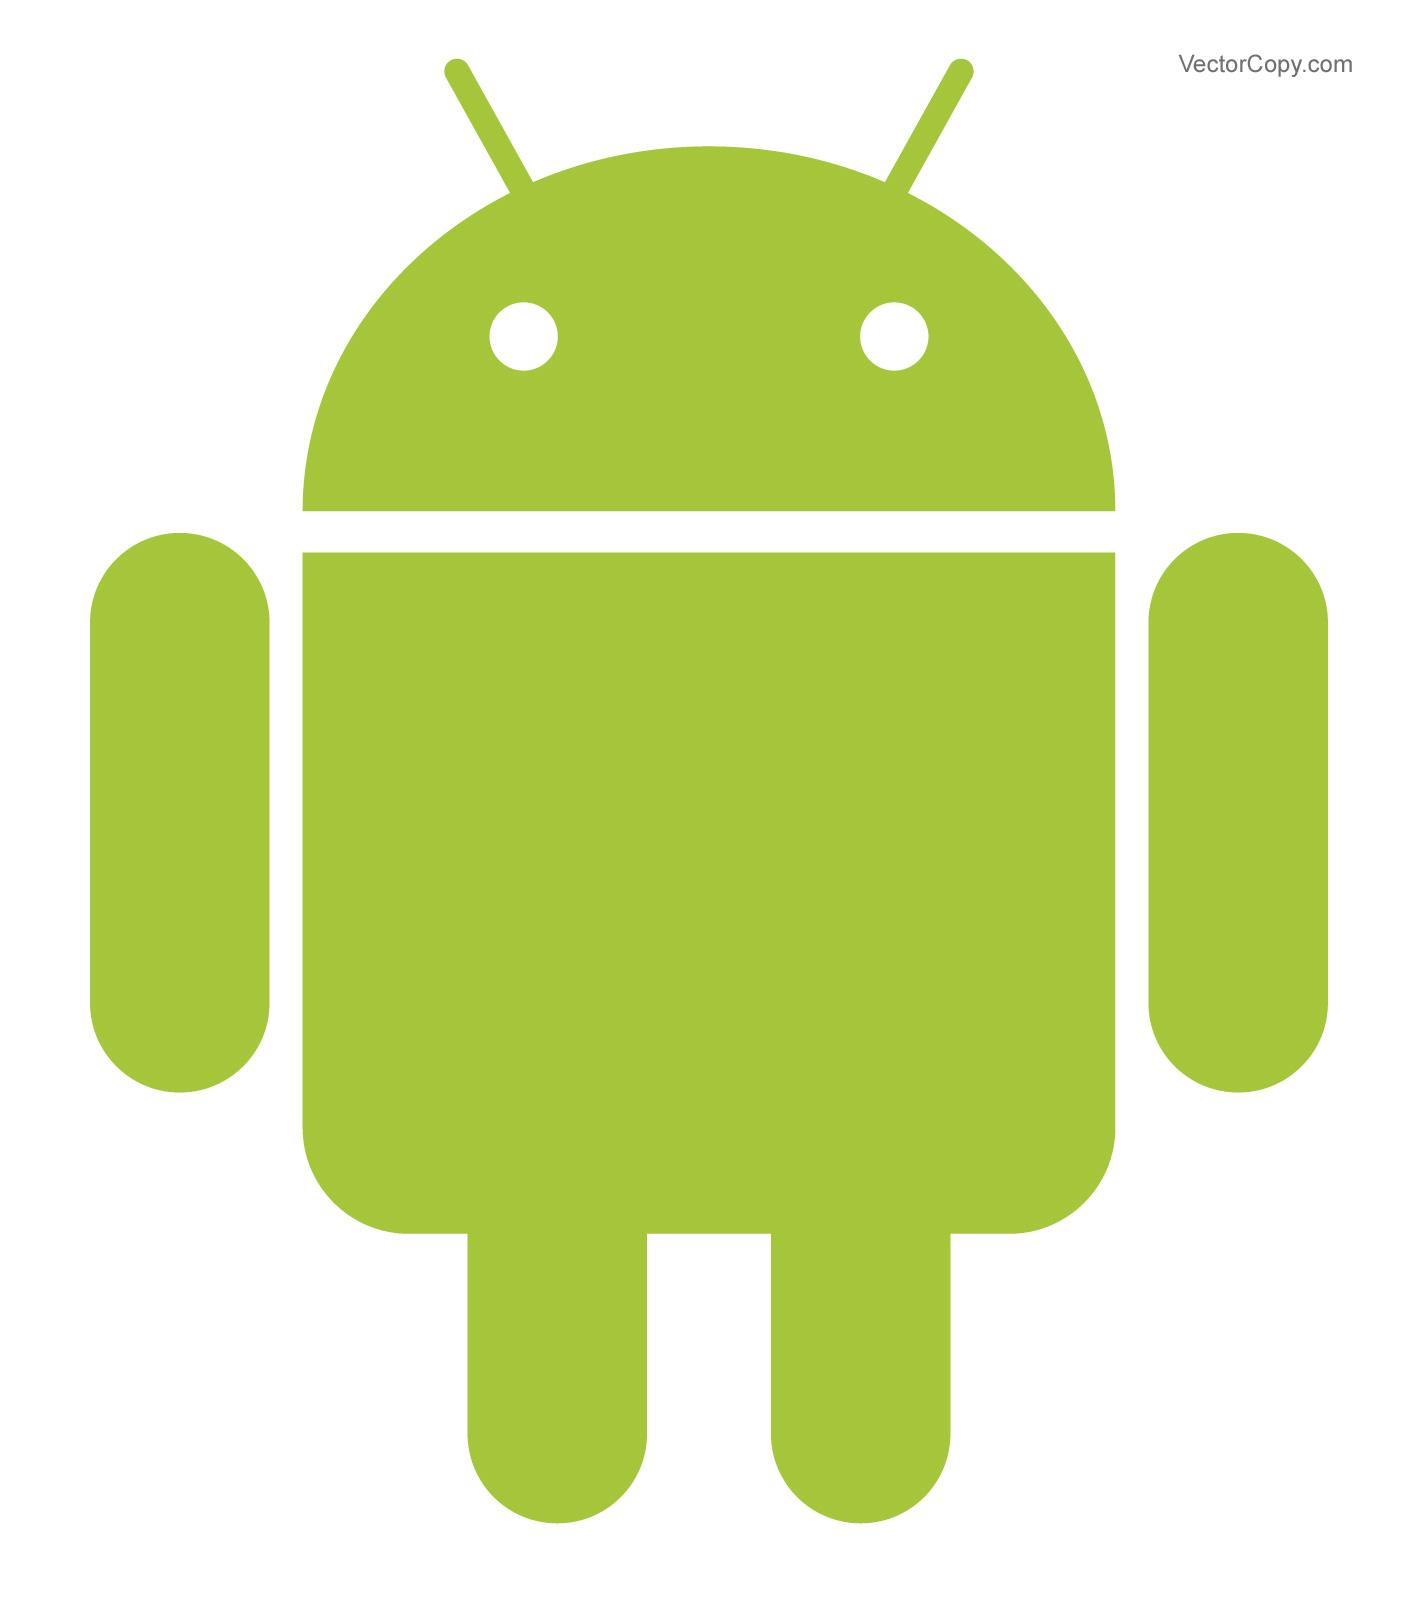 12 Android Vector Icon Images